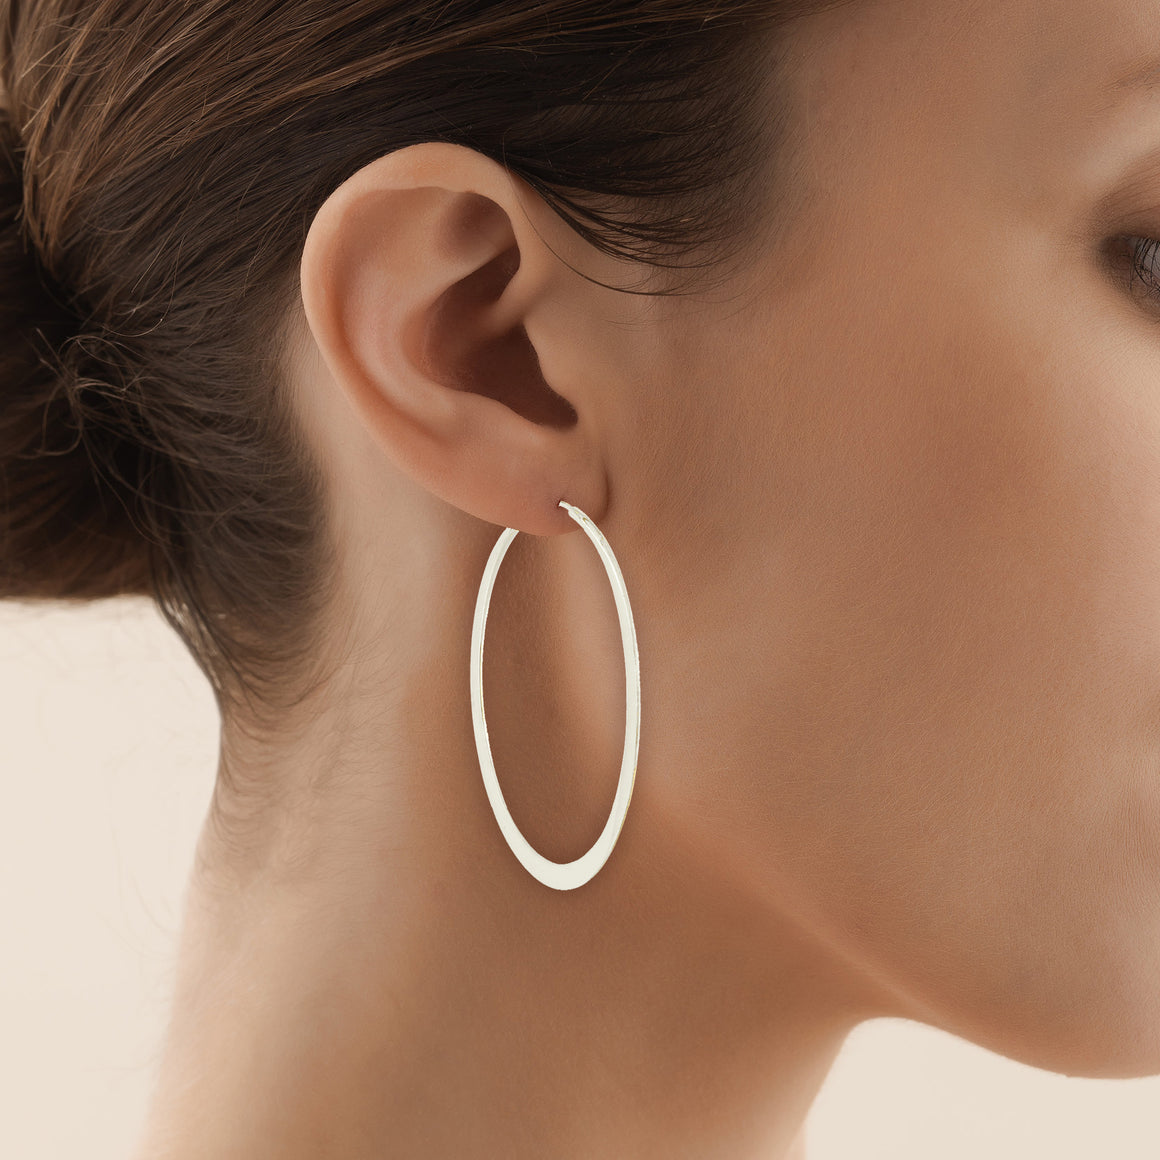 Endless Hoop Earrings in Matte White Gold - 2 inch